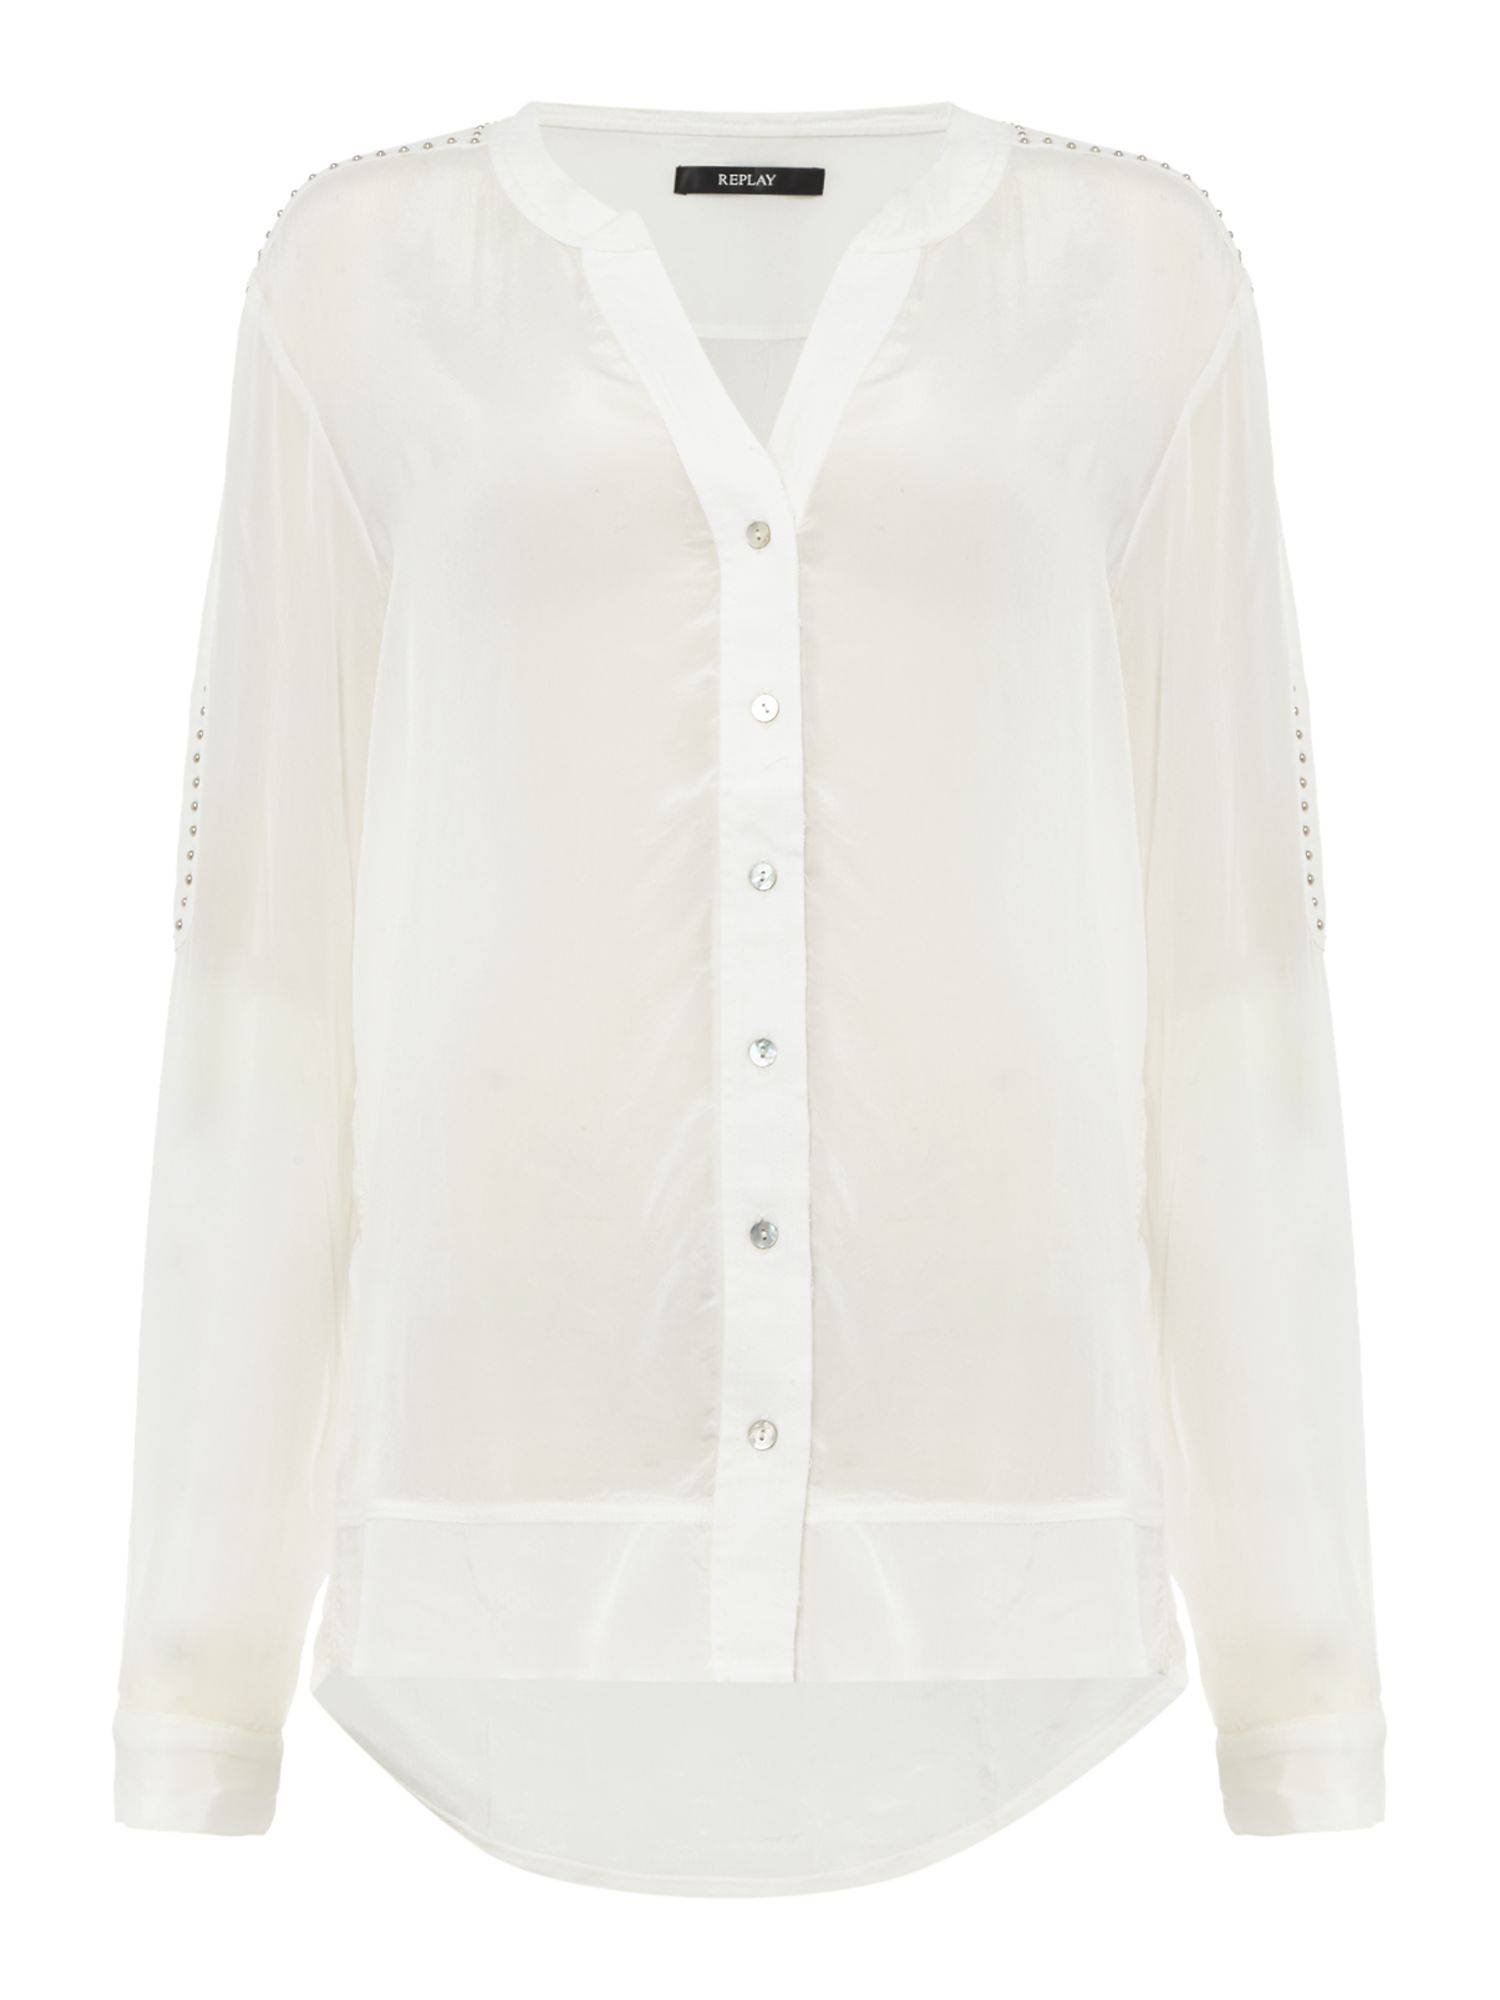 Replay Studded georgette shirt (Large)